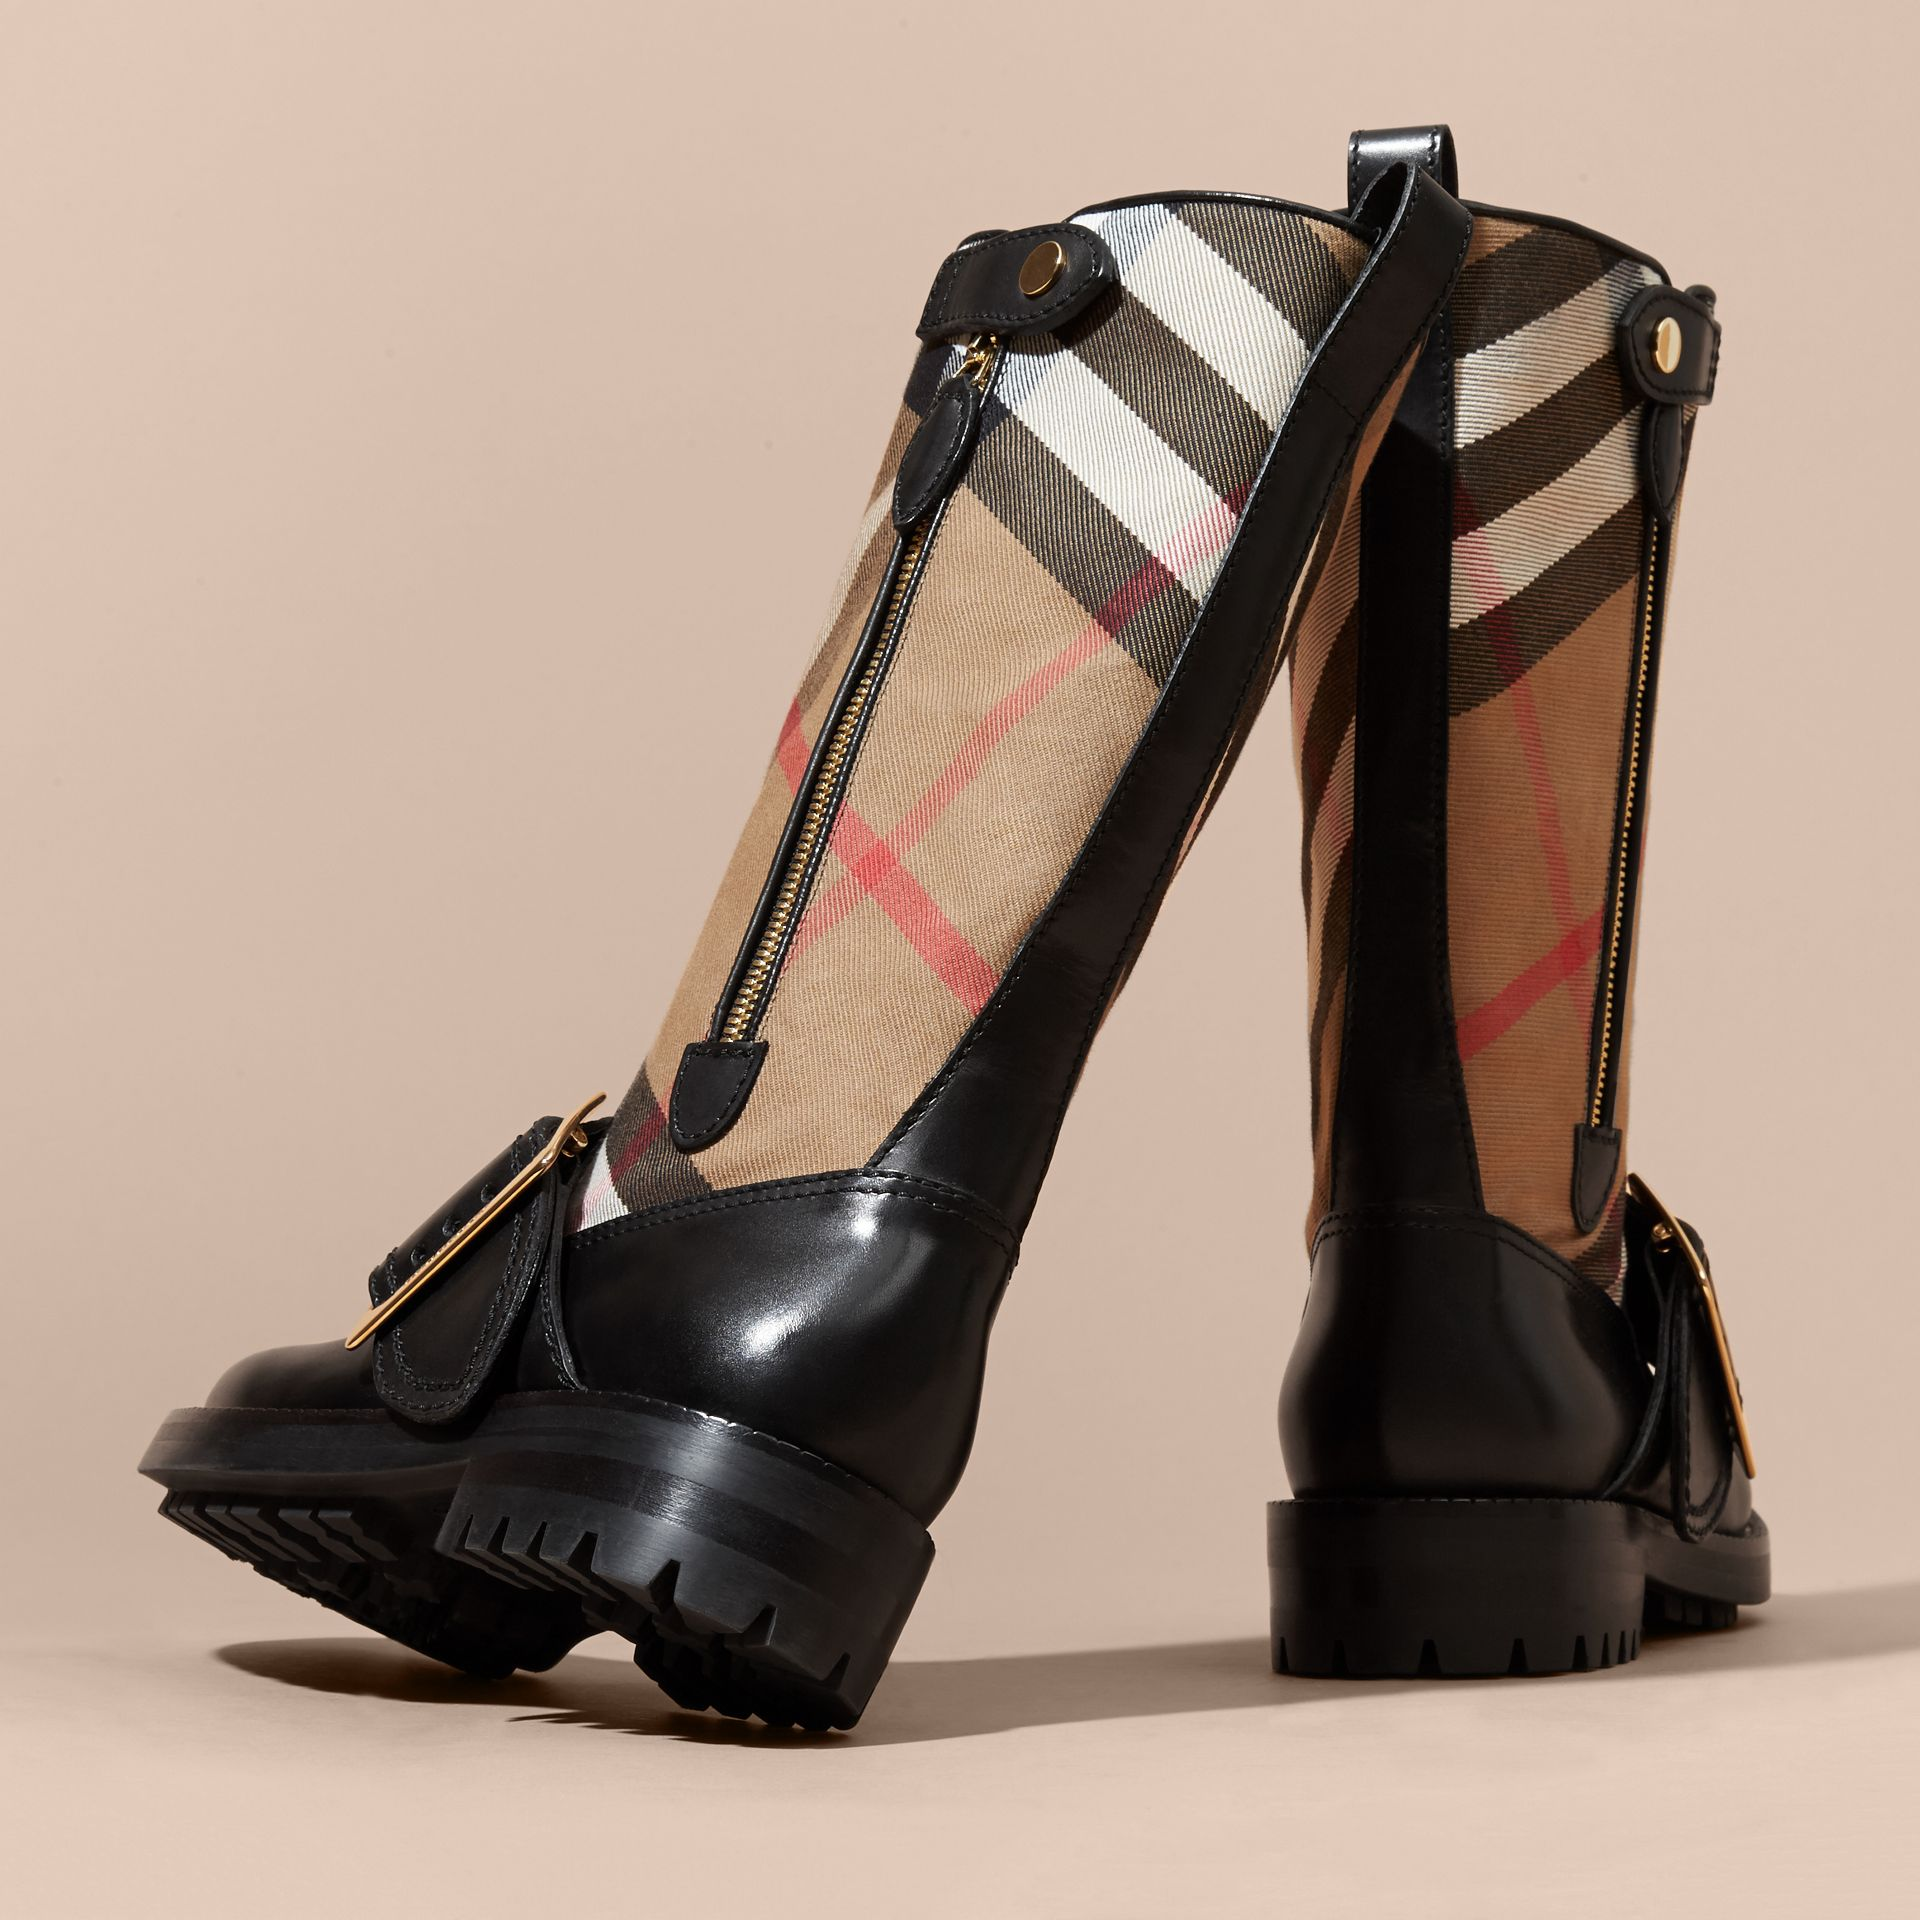 House Check Buckle Detail Leather Boots in Classic - Women | Burberry - gallery image 4